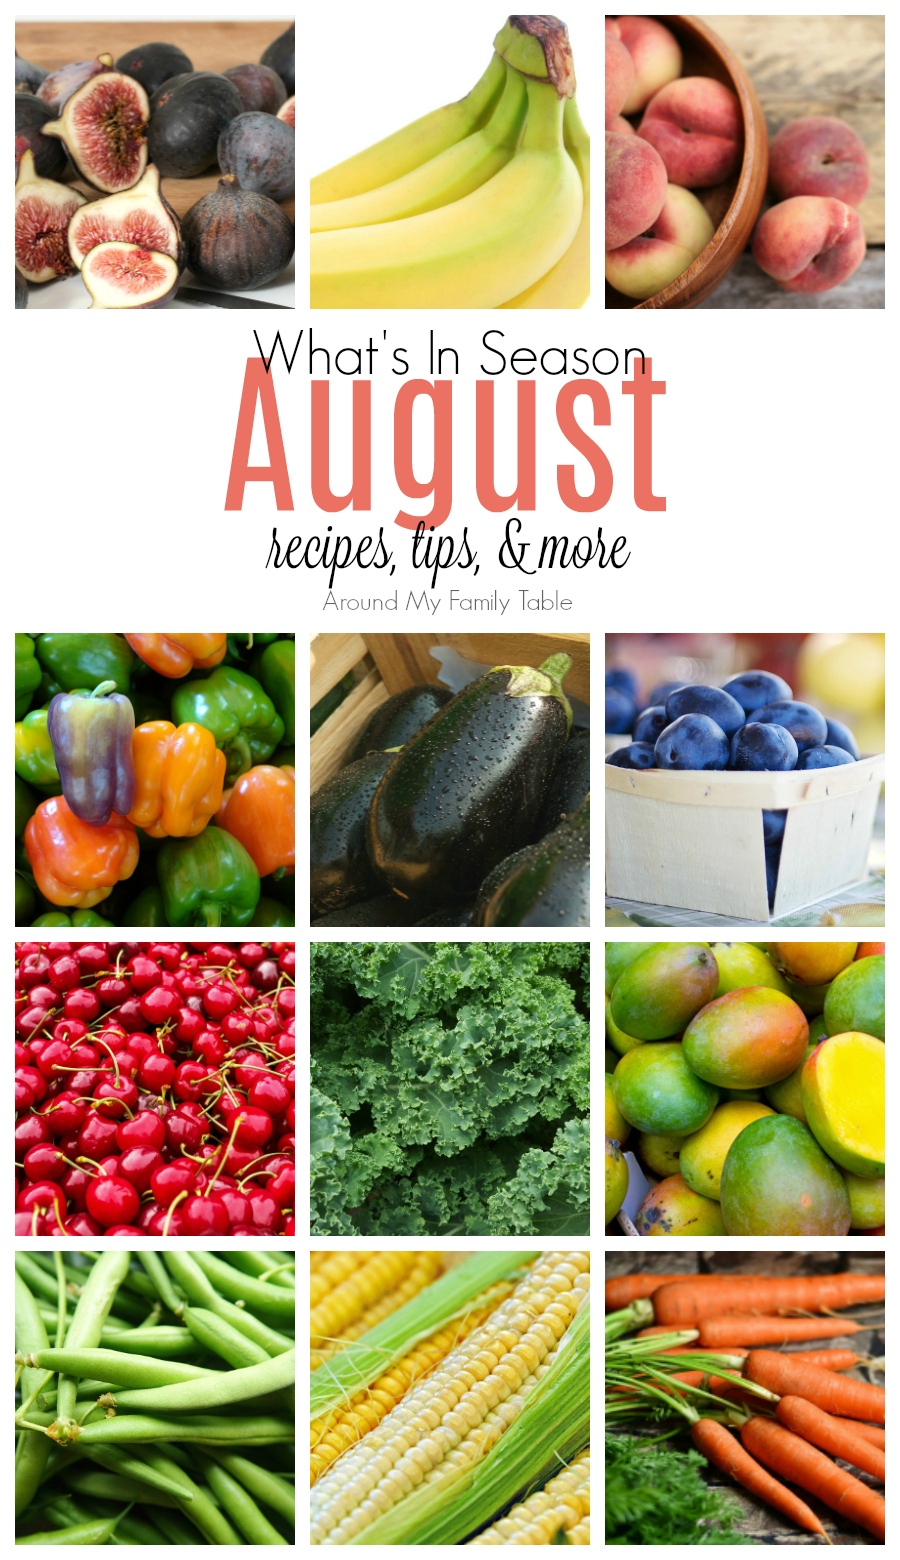 Images of fruits and vegetables that are in season during the month of August.